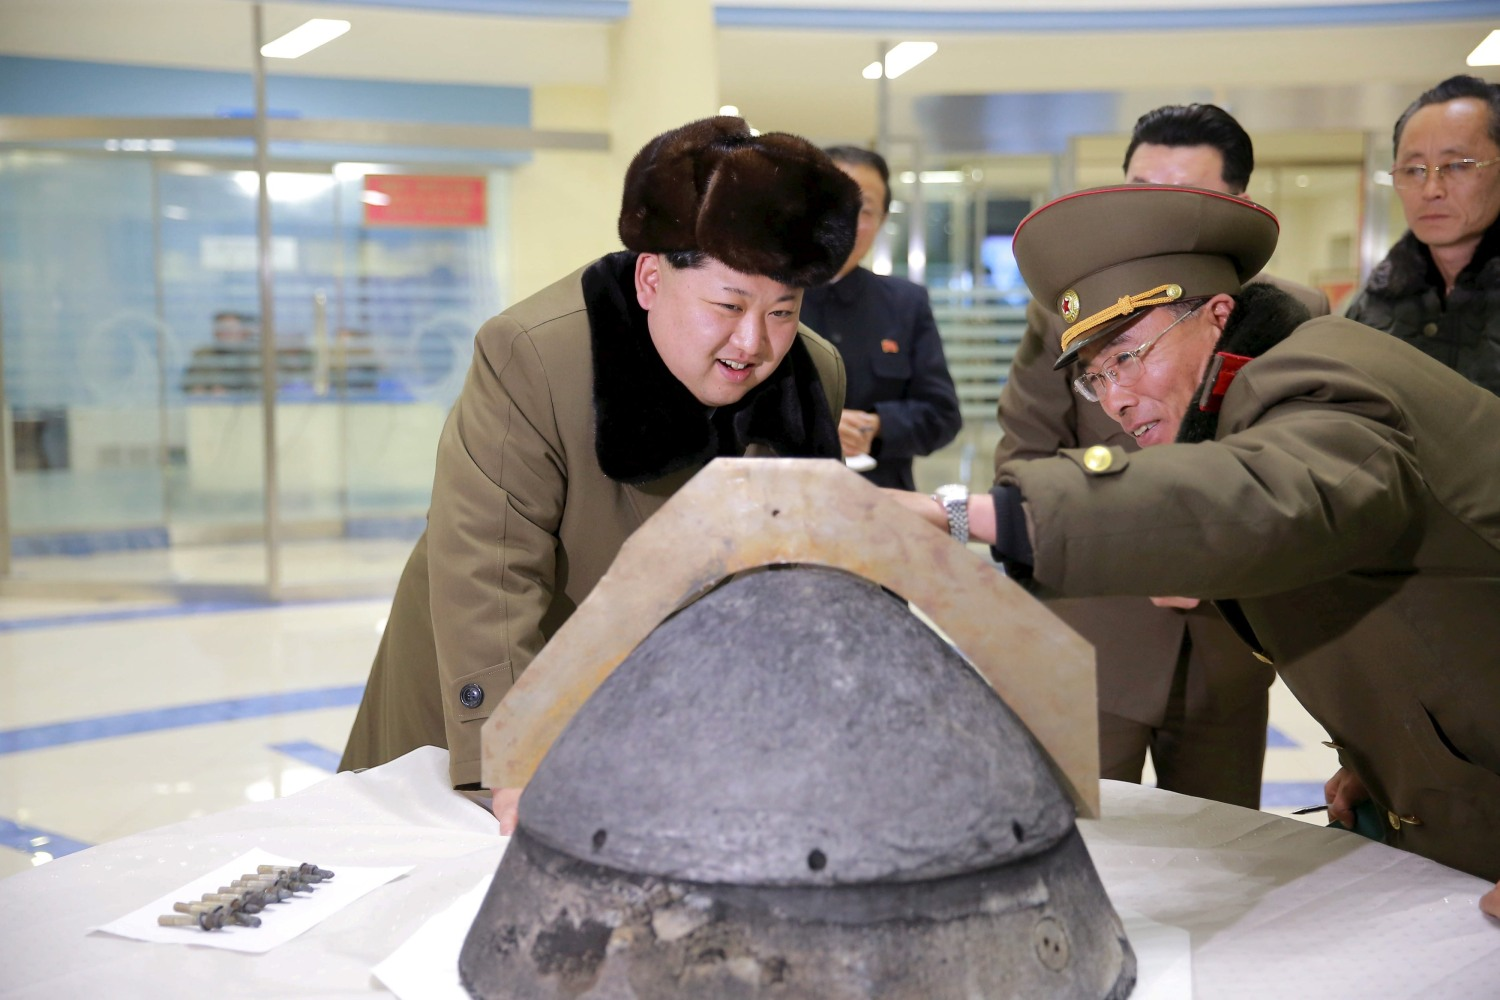 USA officials warn that North Korea will test another missile soon